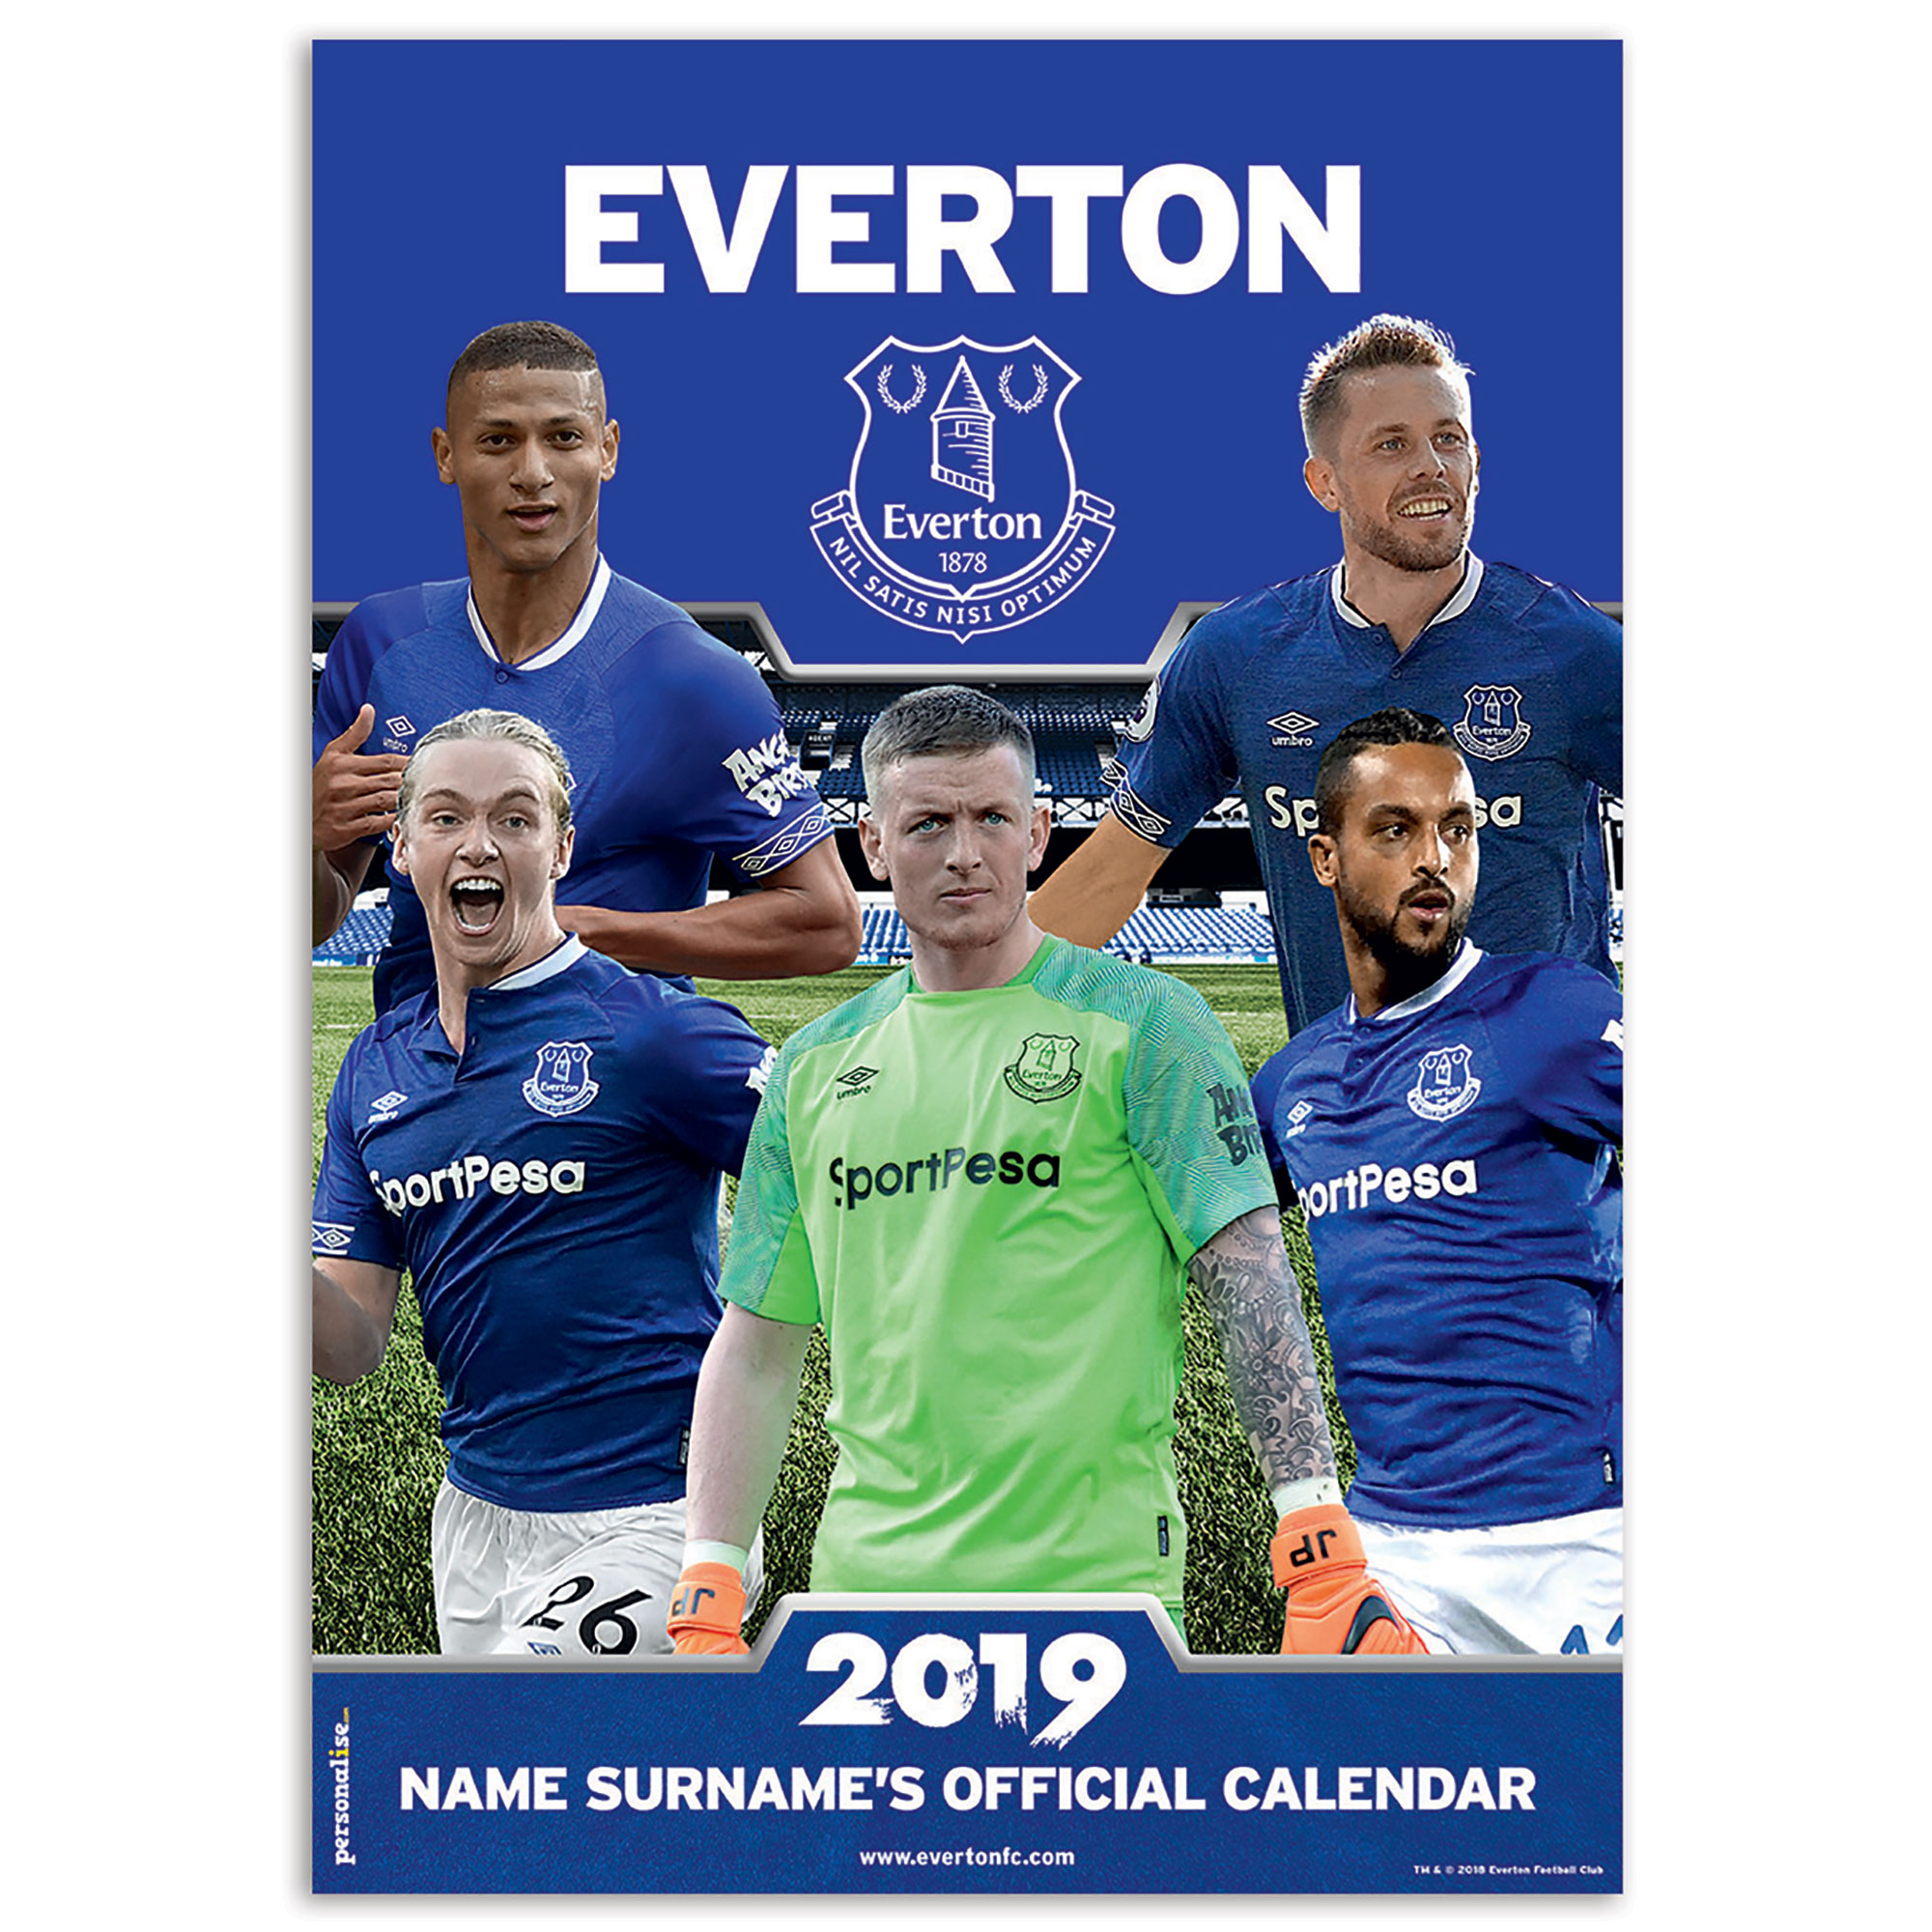 Everton 2014 Personalised Calendar